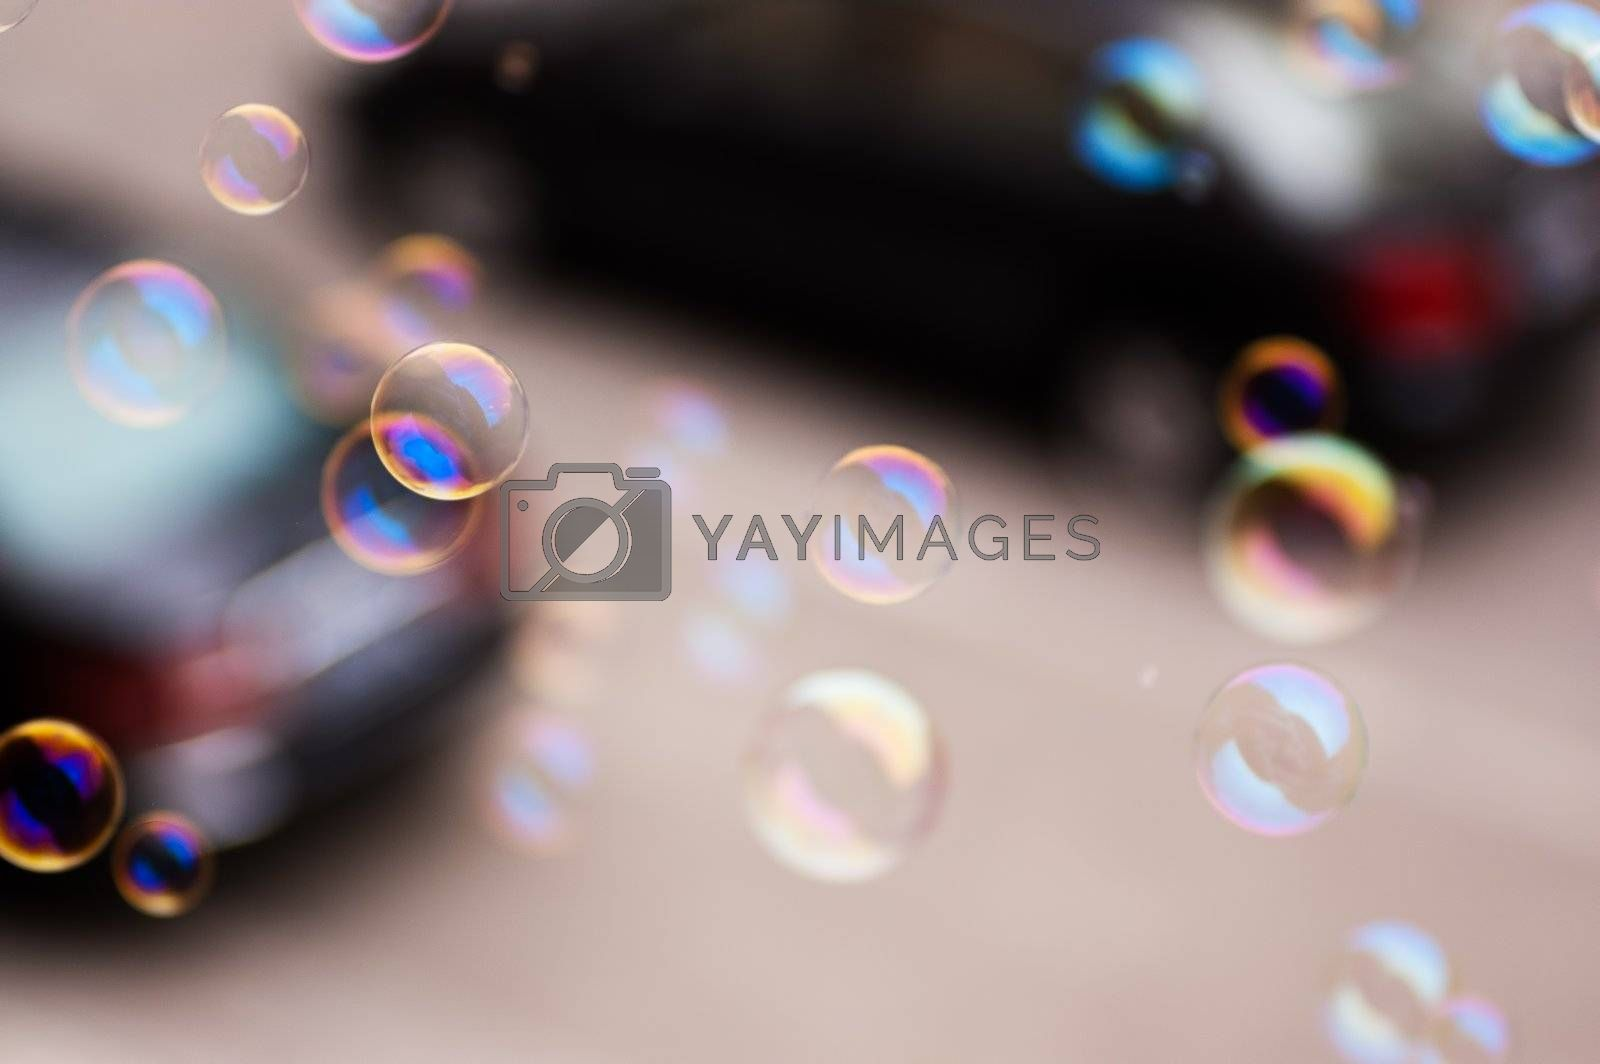 Soap bubbles in the air